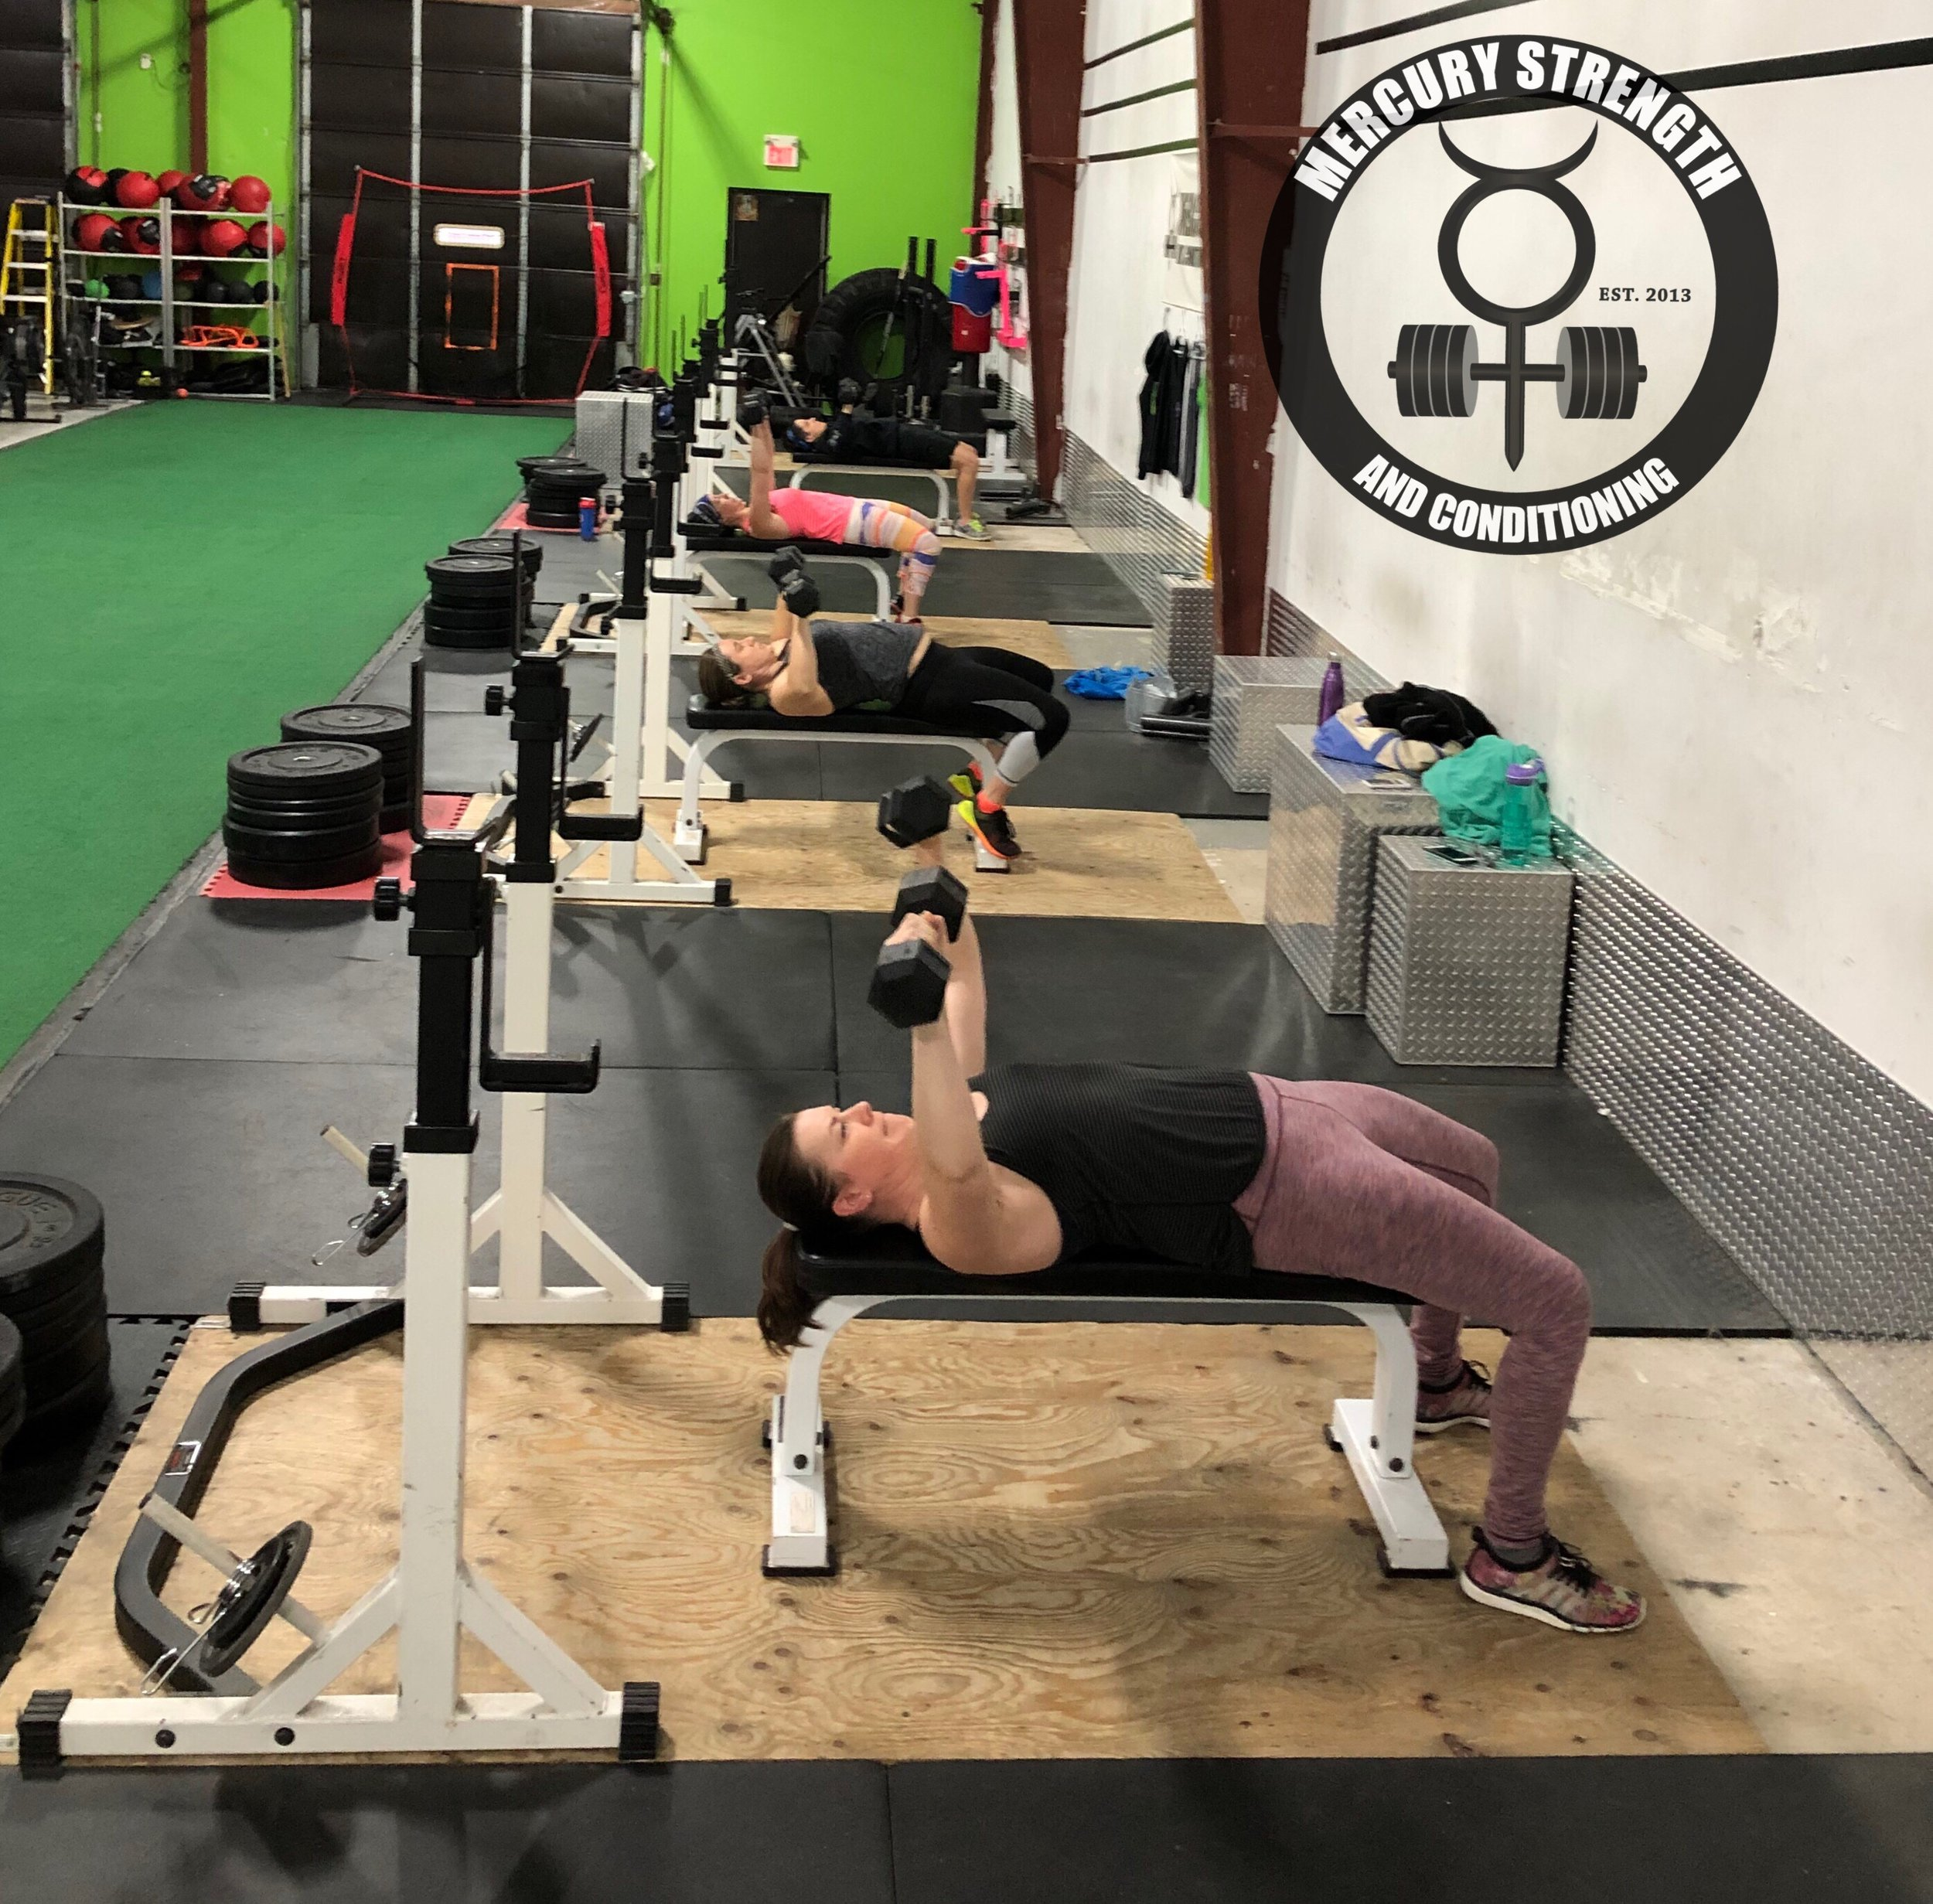 Gym-powerlifting-fitness-personal training-training-bootcamp-crossfit-kingston-kingston gym-kids-mercury-strength-conditioning-athlete-dumbbell-bench press